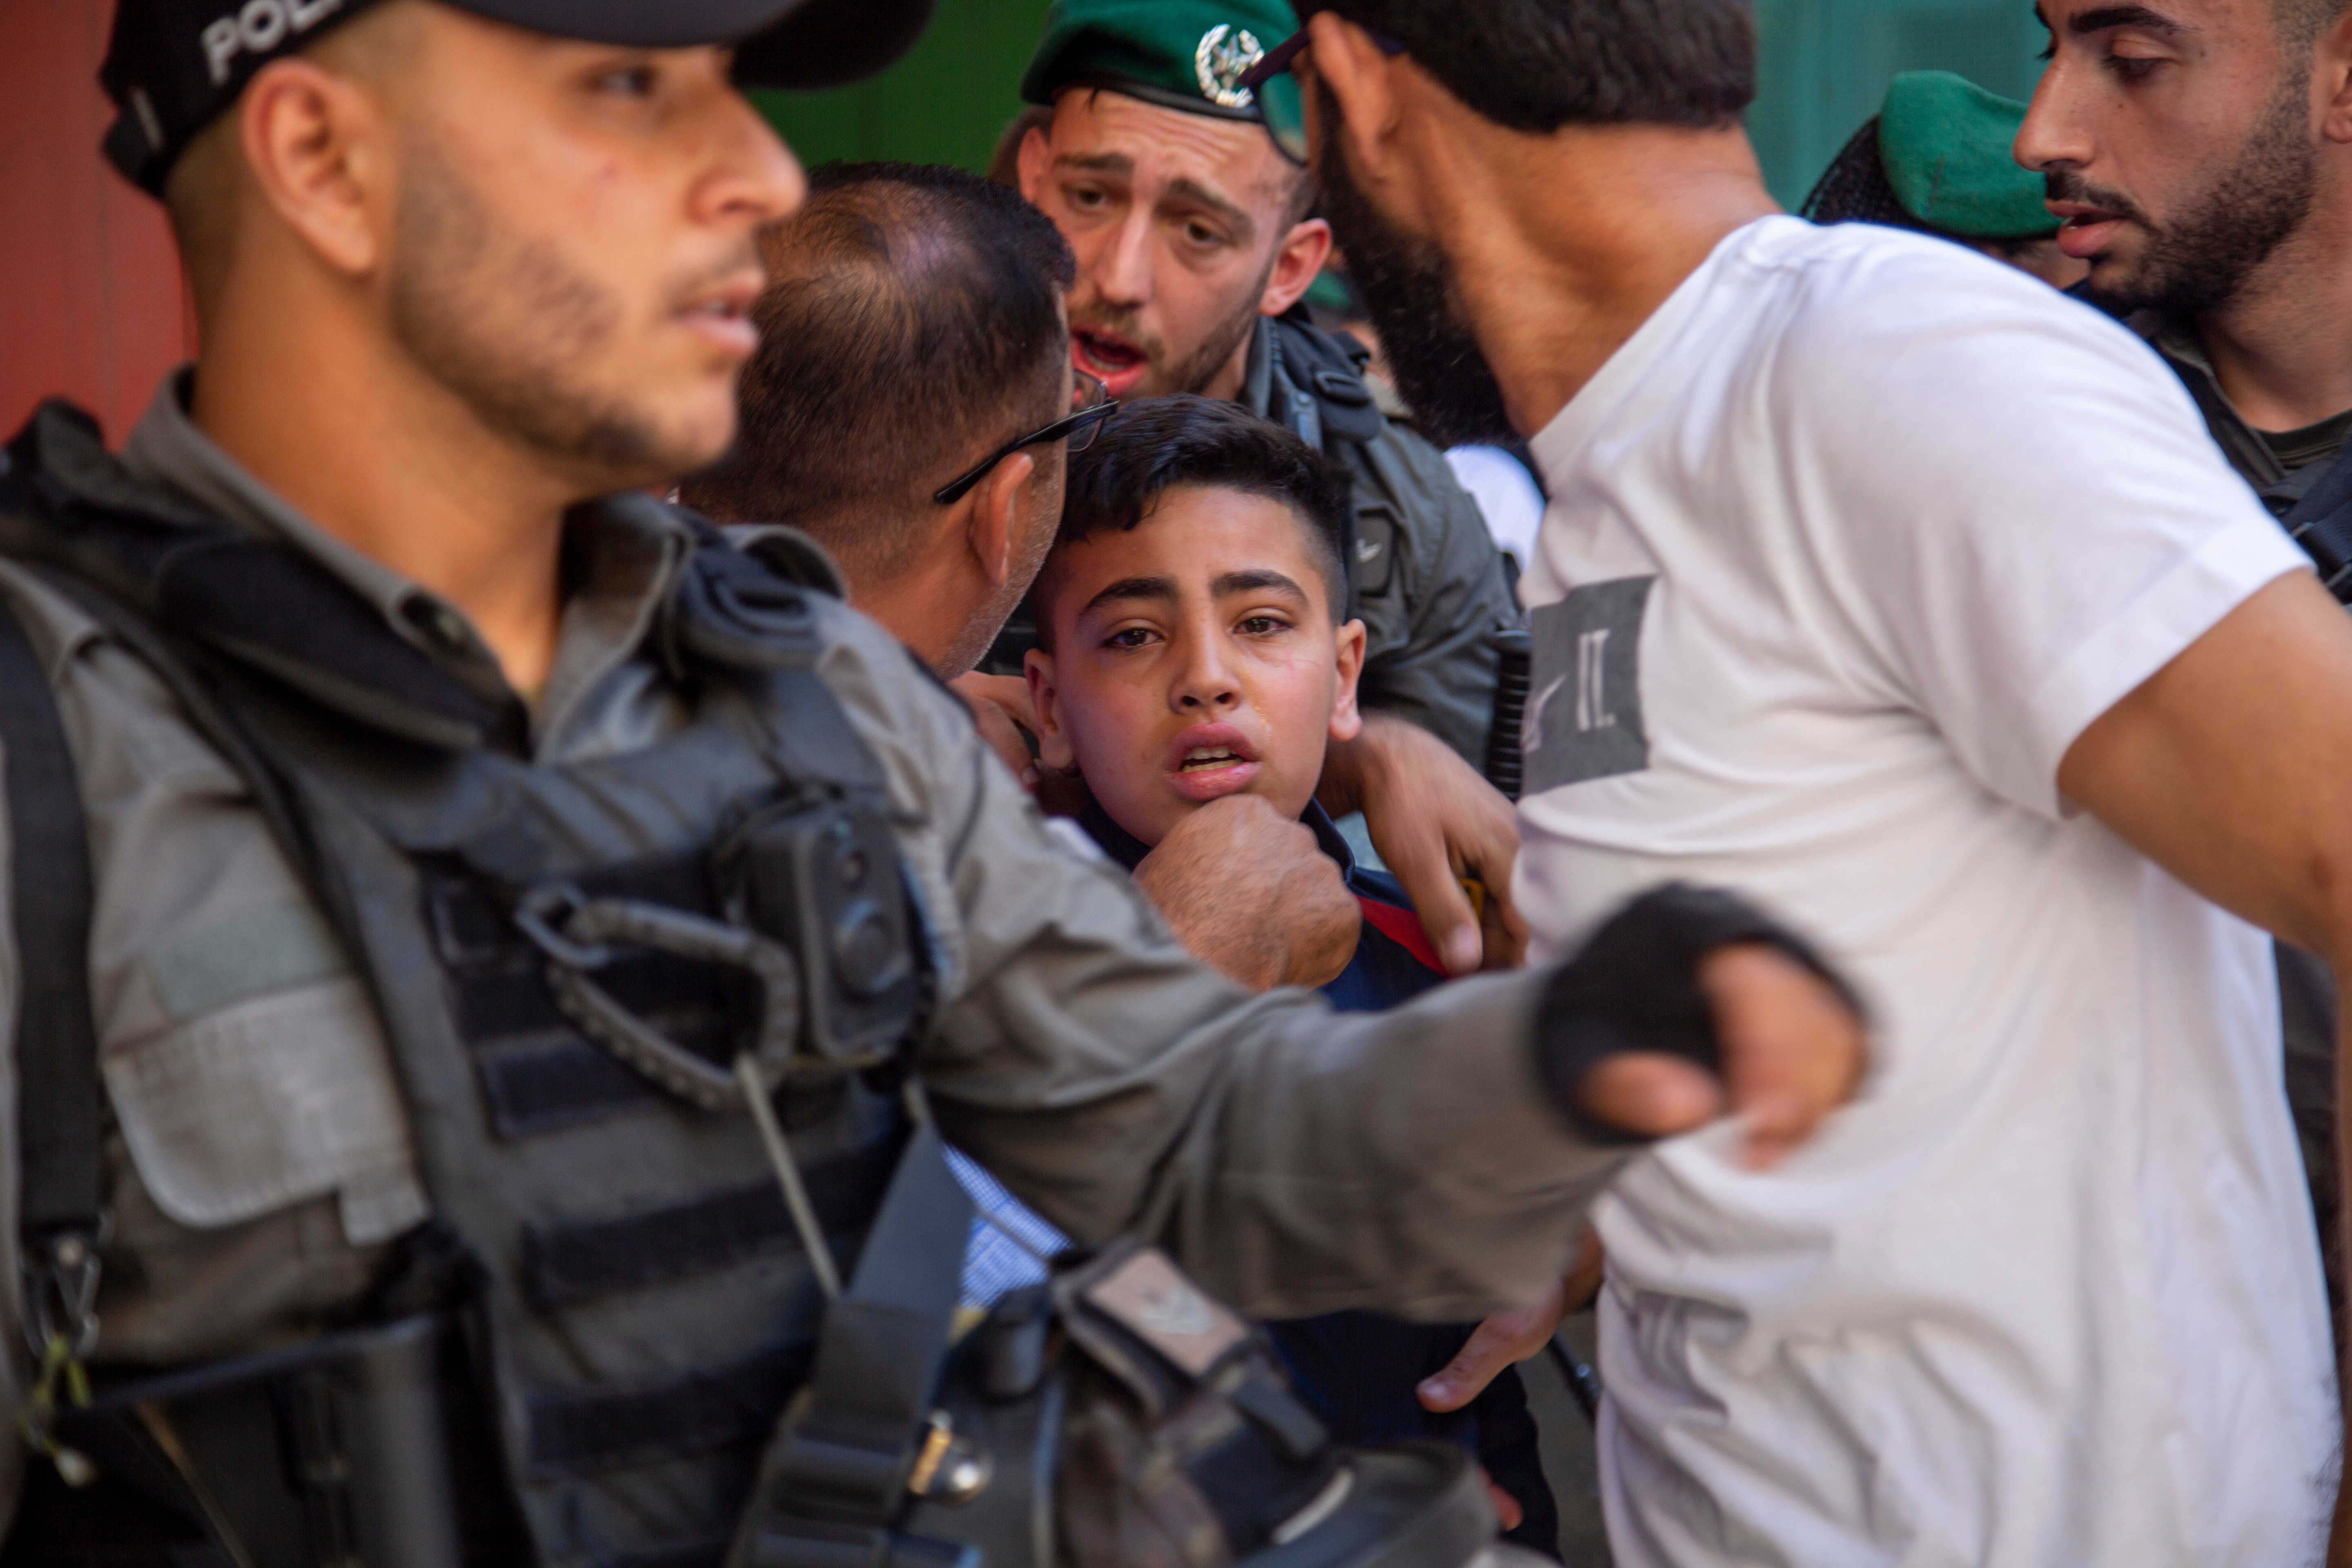 Israeli forces arrested scores of Palestinians as they took to the streets to peacefully express their opposition to Israel's actions in Gaza (MEE/Latifeh Abdellatif)